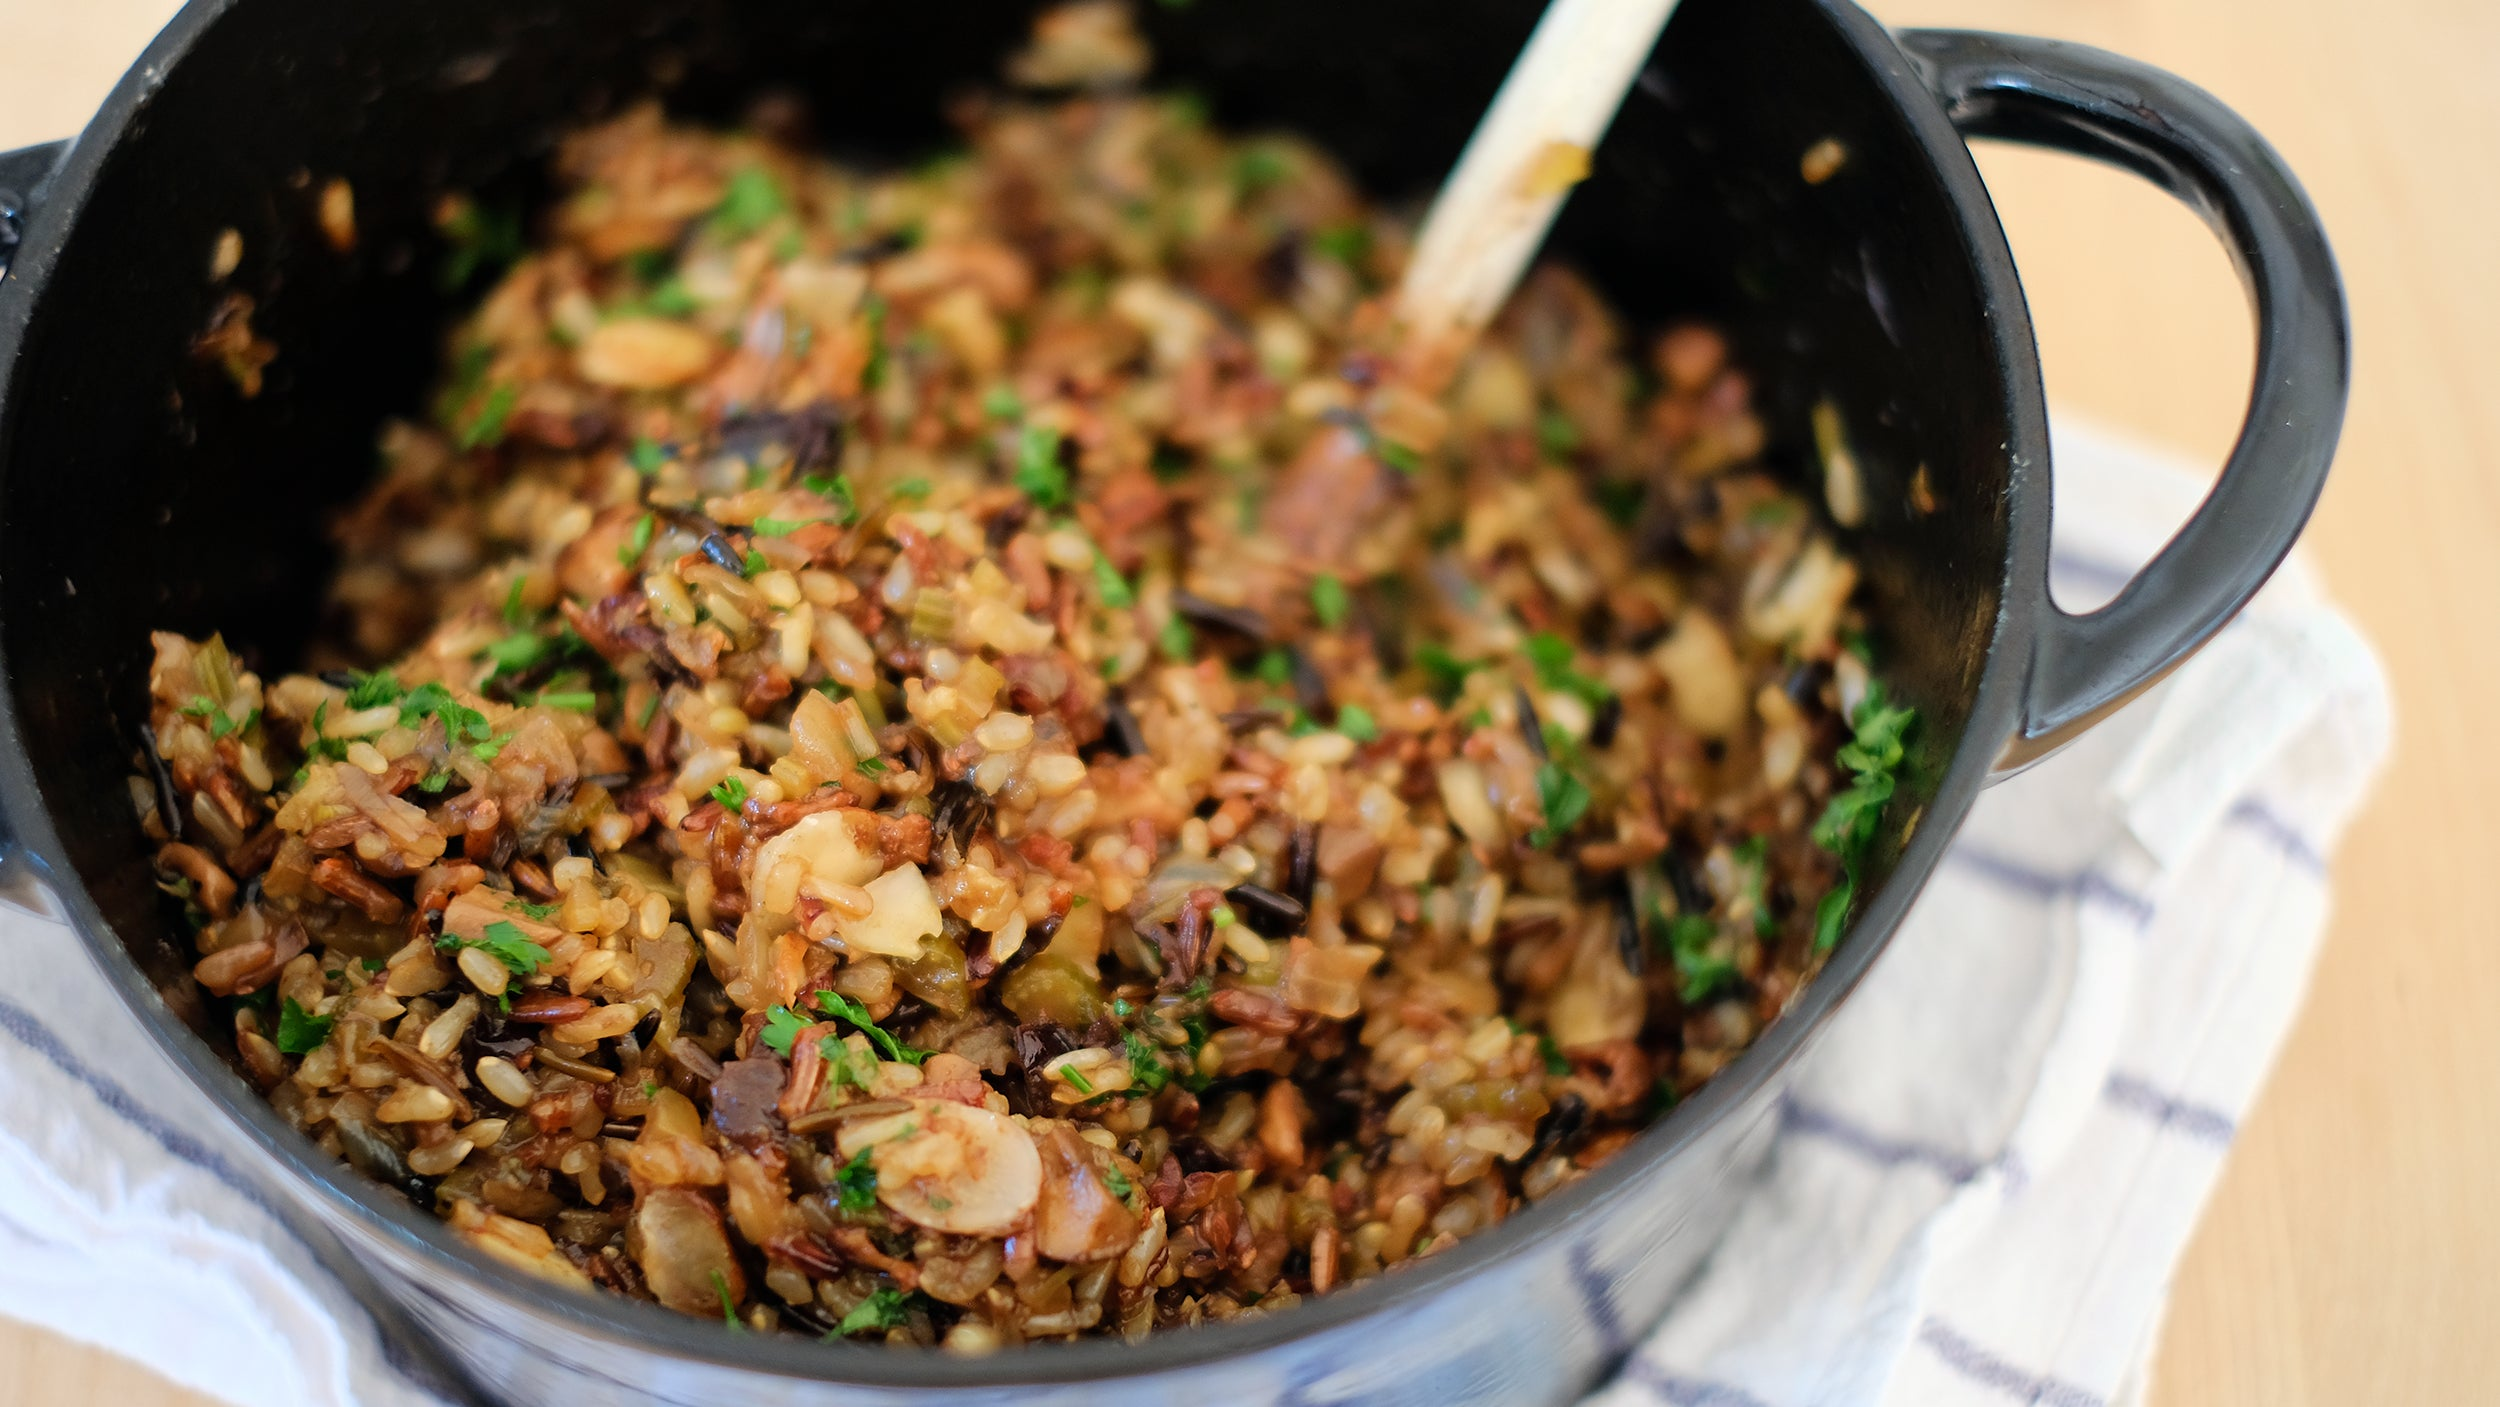 Recipe of the month: Holiday wild rice and mushroom stuffing